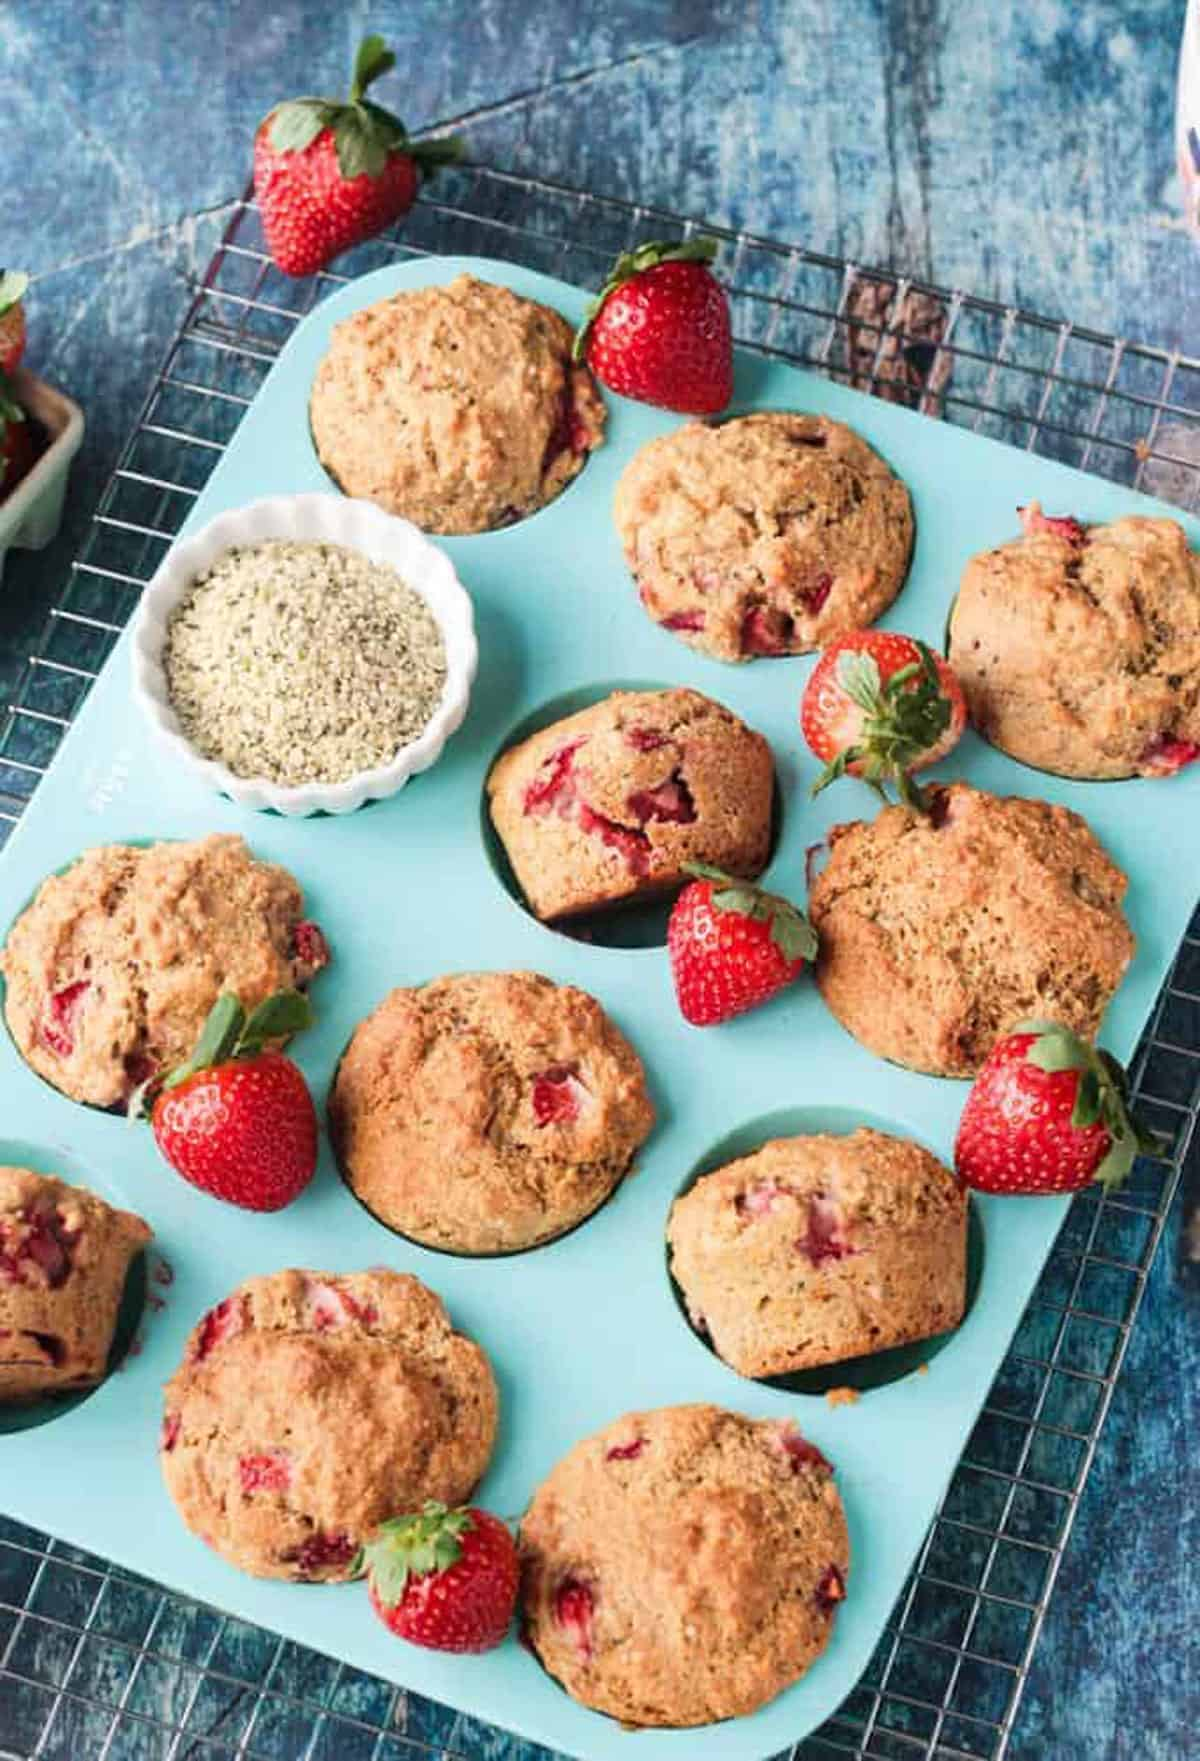 Protein muffins with strawberries in a blue silicone muffin pan.